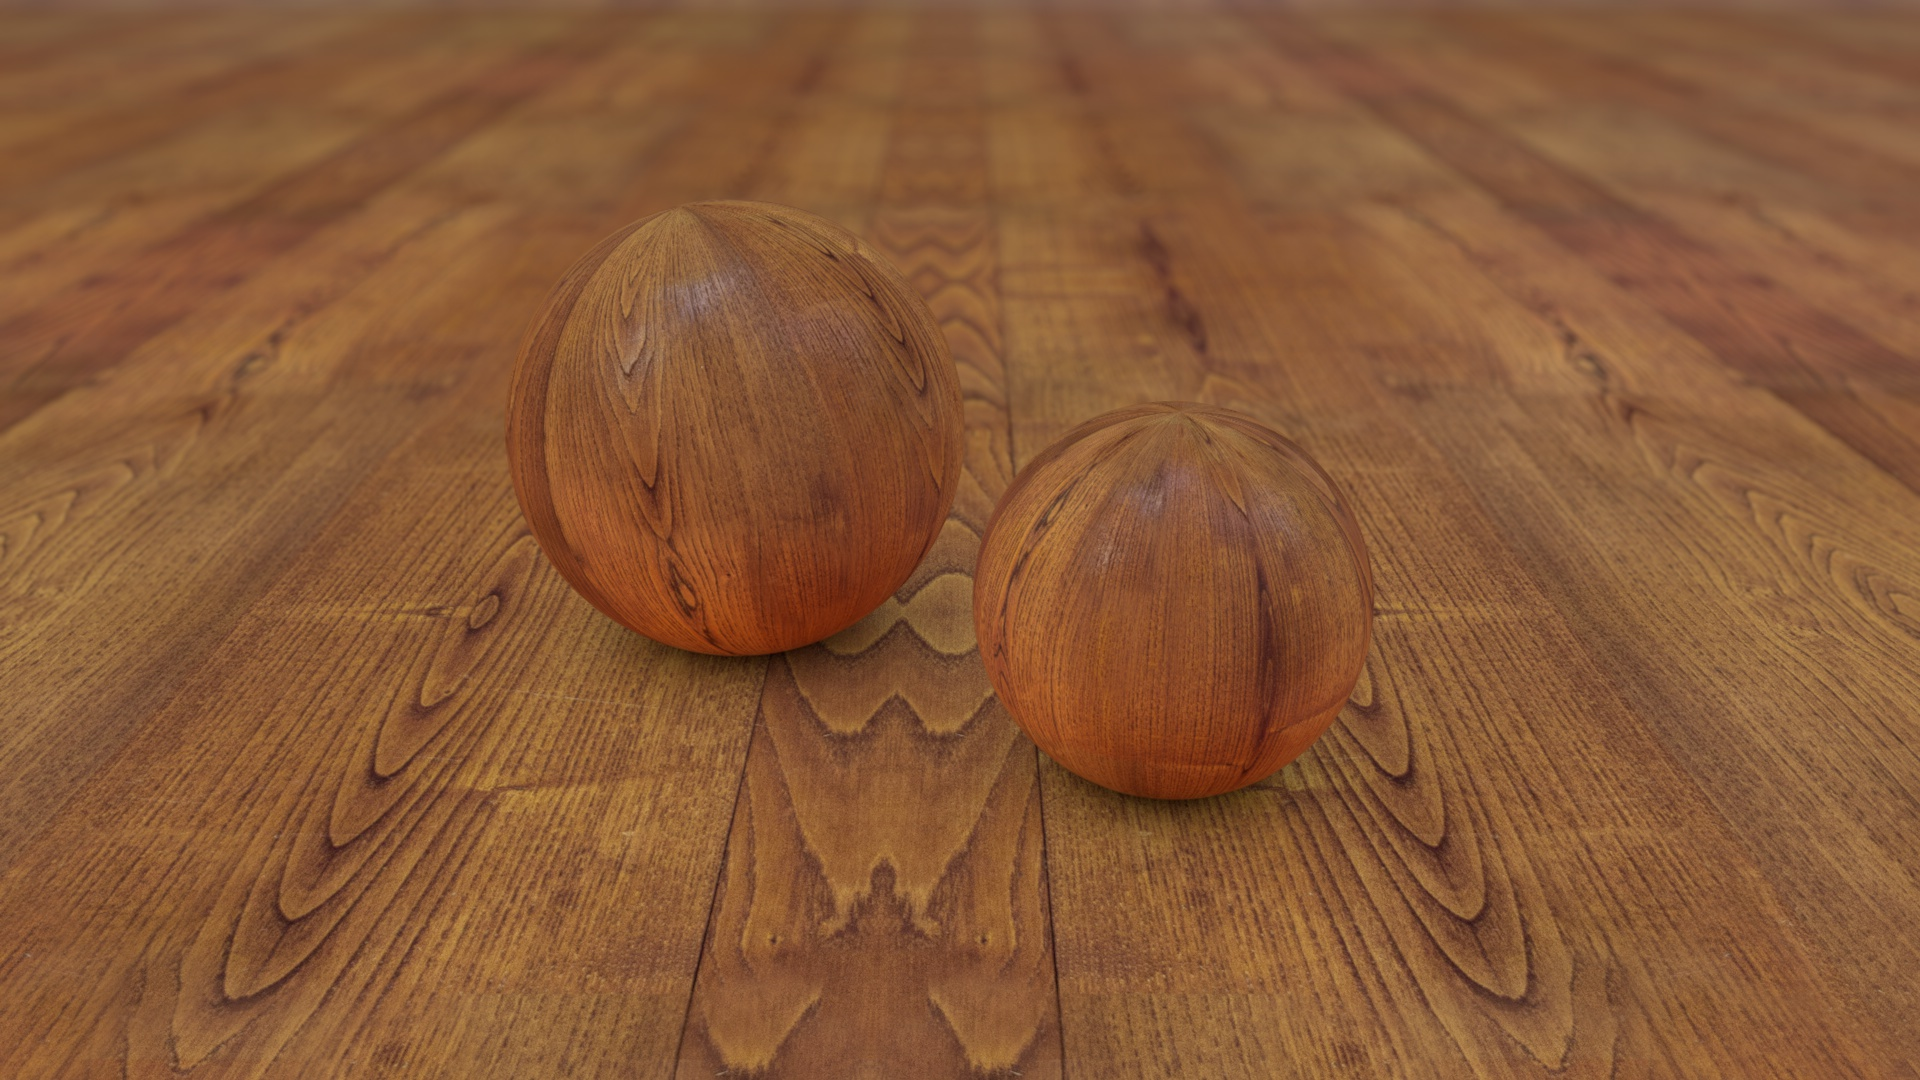 23 seamless wood textures for cinema4d by 3dtreatment 3docean floorwood 1 monestry door 3dtreatmentg voltagebd Gallery